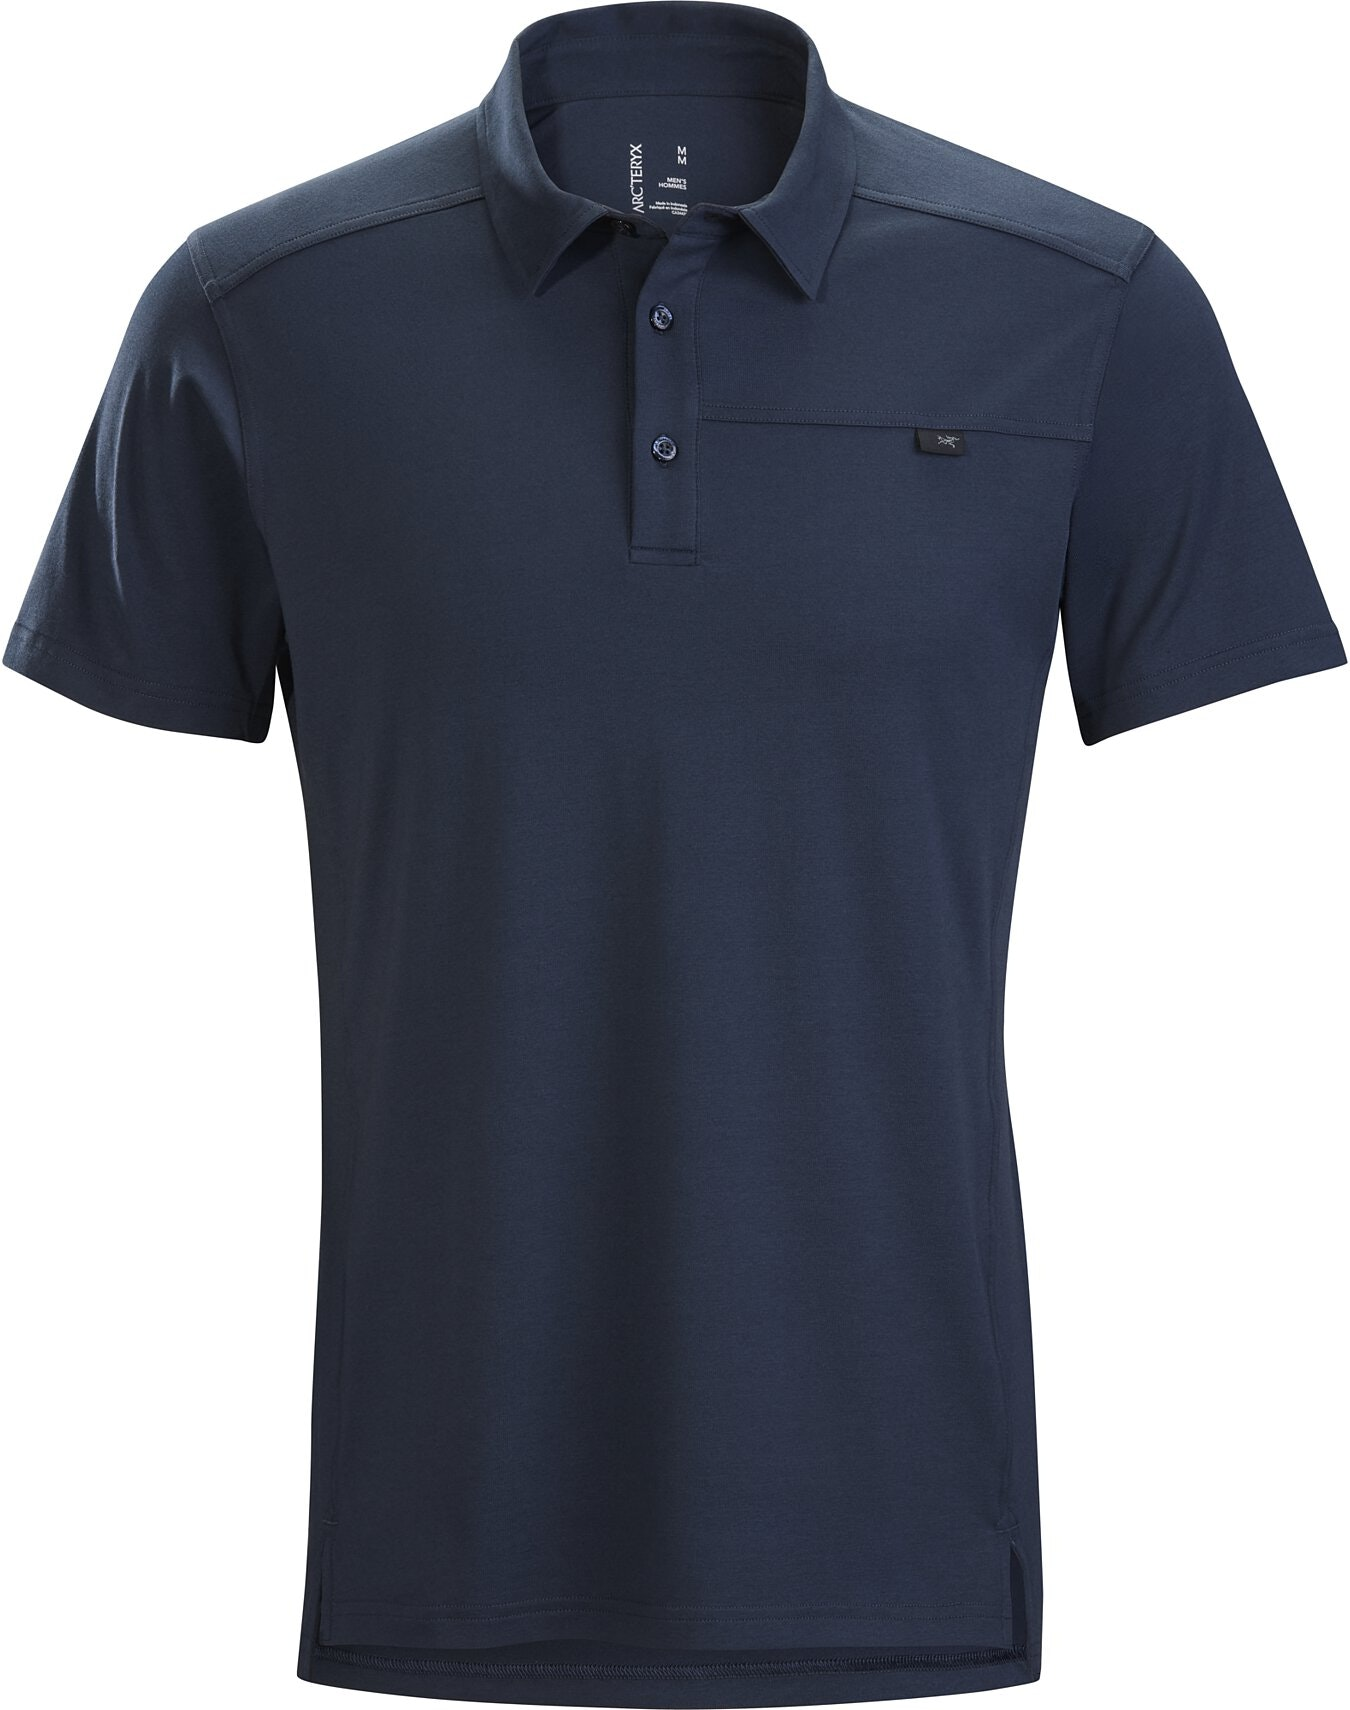 Captive Polo Shirt SS Fortune